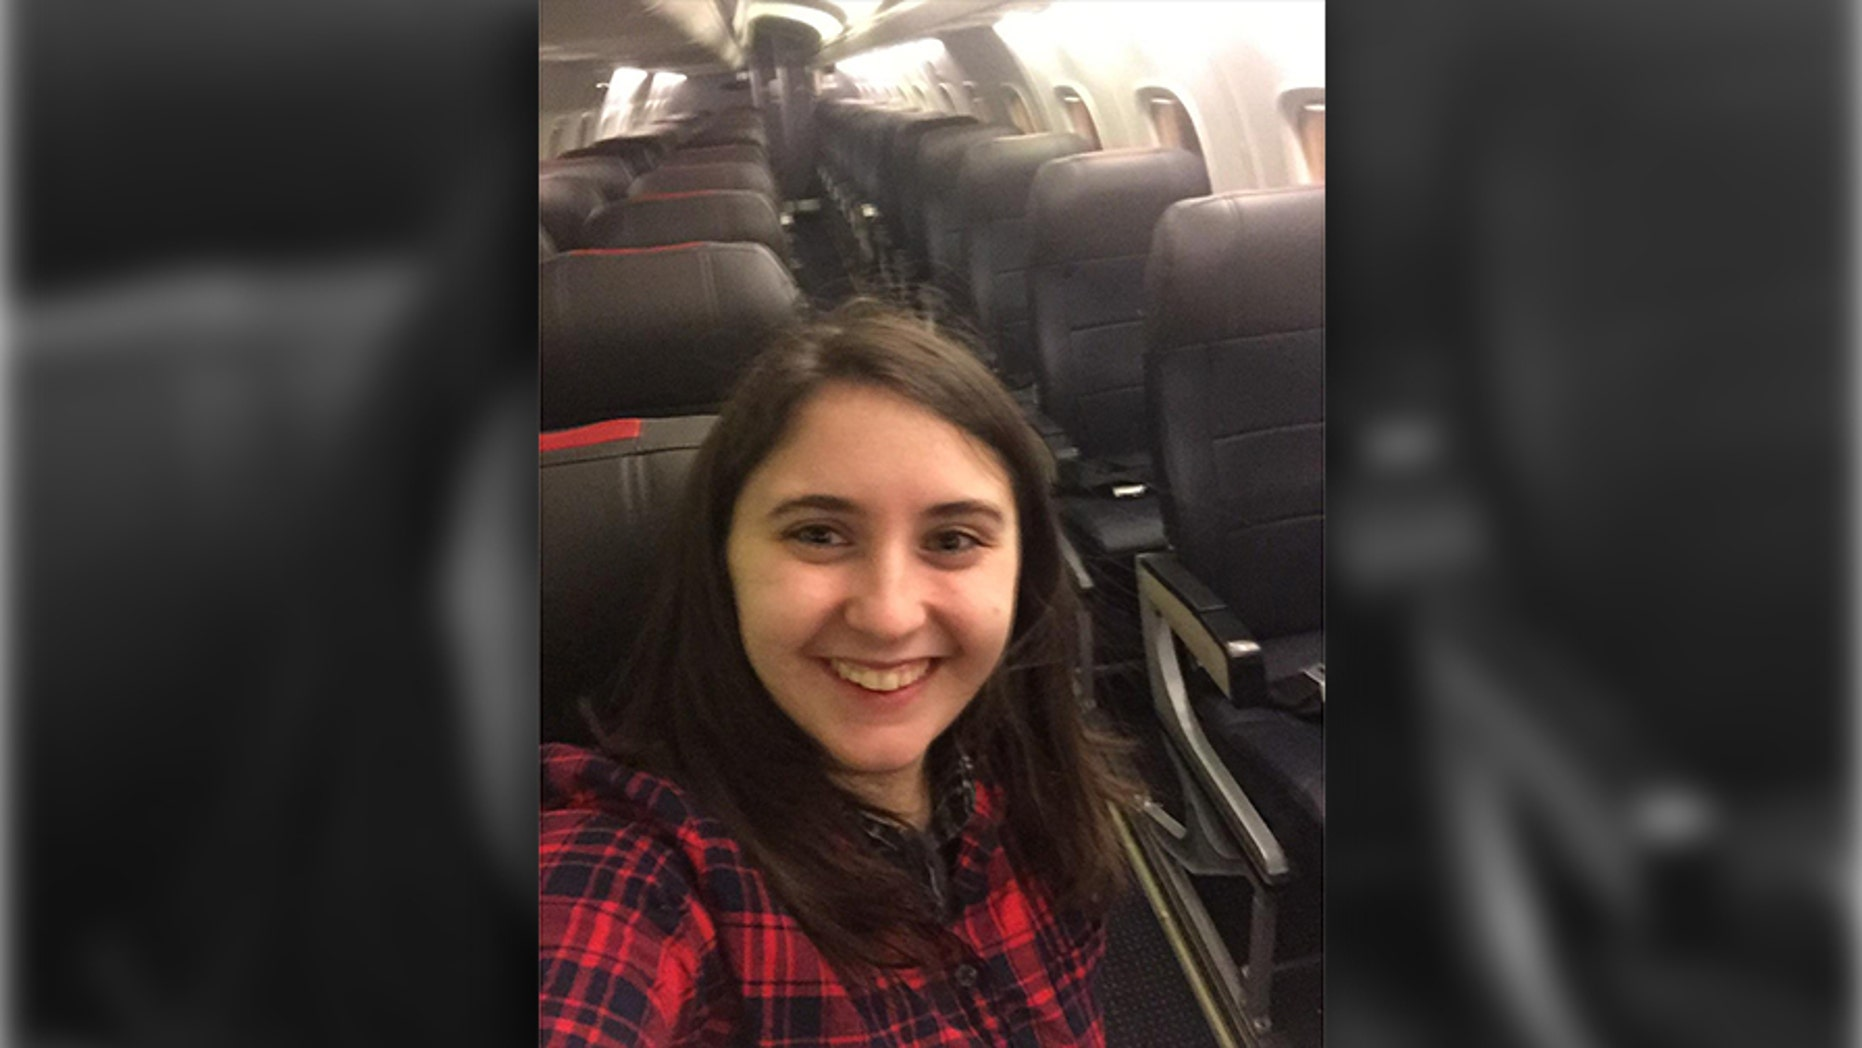 Beth VerSteeg got herself booked on a staff-only flight by accident — and she says they still gave her the entire safety demonstration.